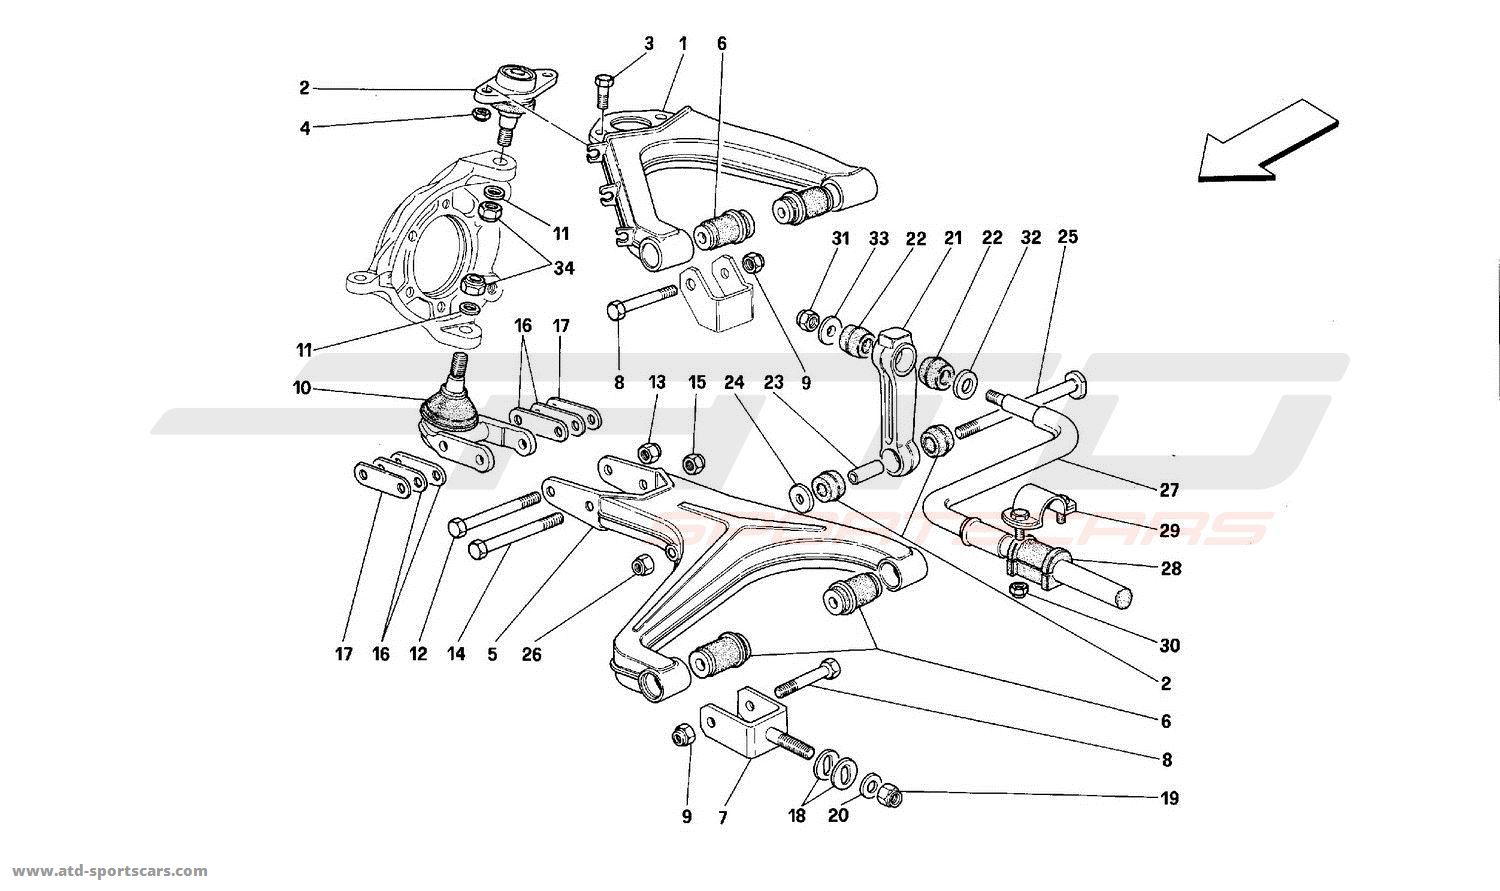 ferrari mondial t undercarriage parts at atd sportscars atd sportscars. Black Bedroom Furniture Sets. Home Design Ideas